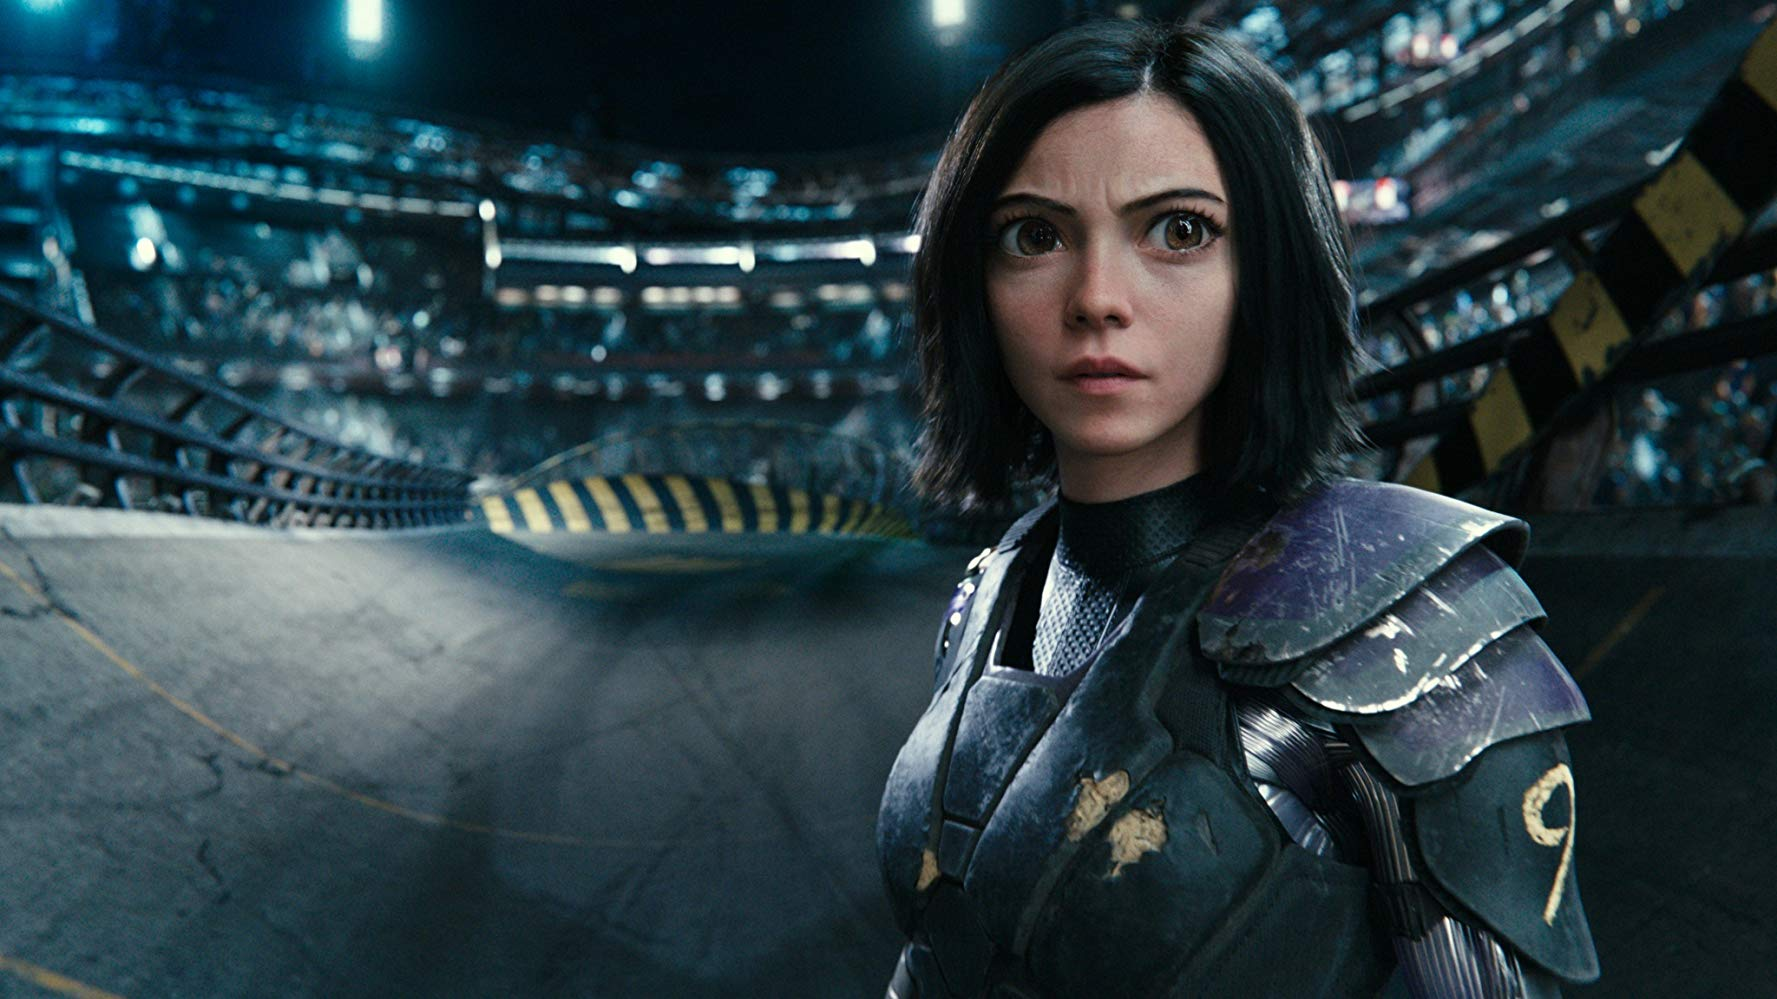 Fox will release Alita: Battle Angel with HDR10+ and Dolby Vision.